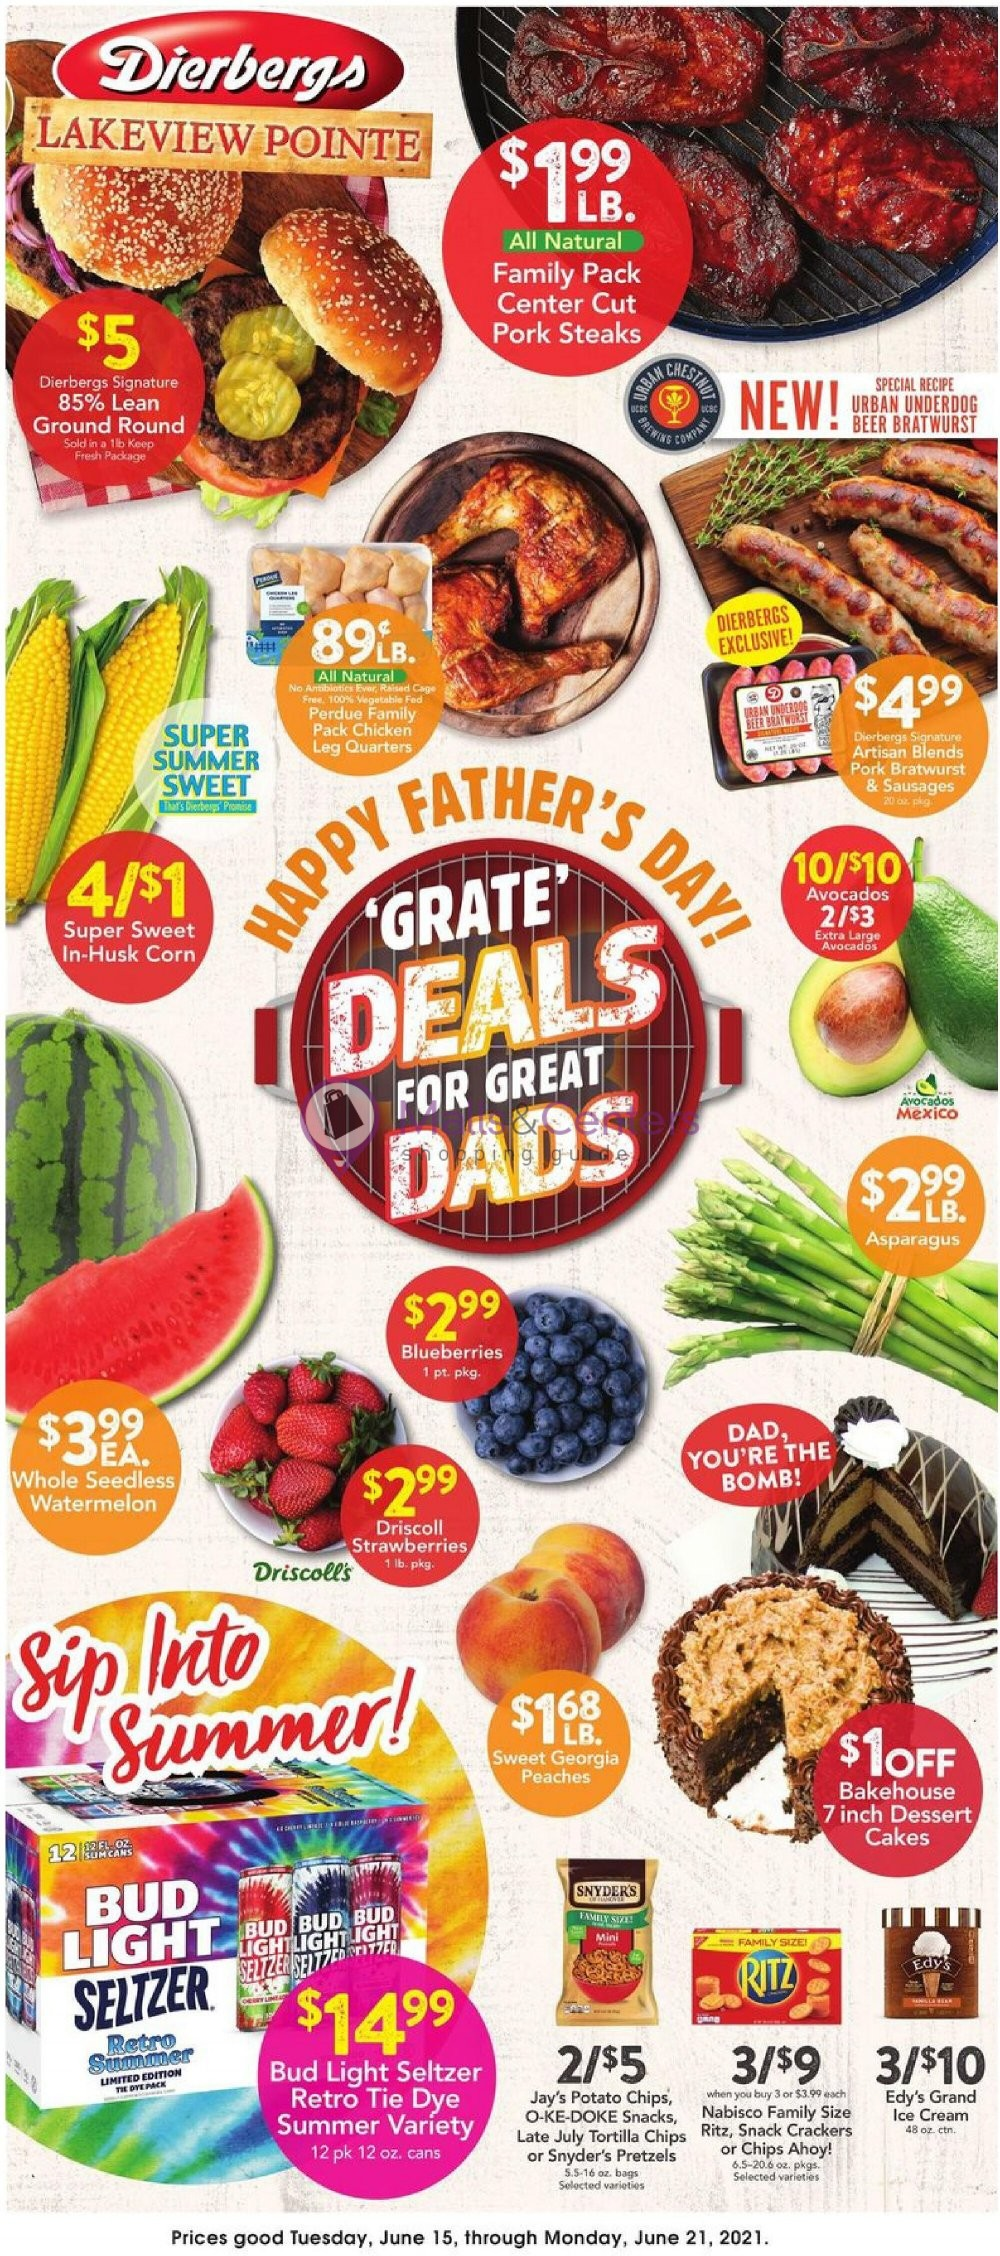 weekly ads Dierbergs - page 1 - mallscenters.com